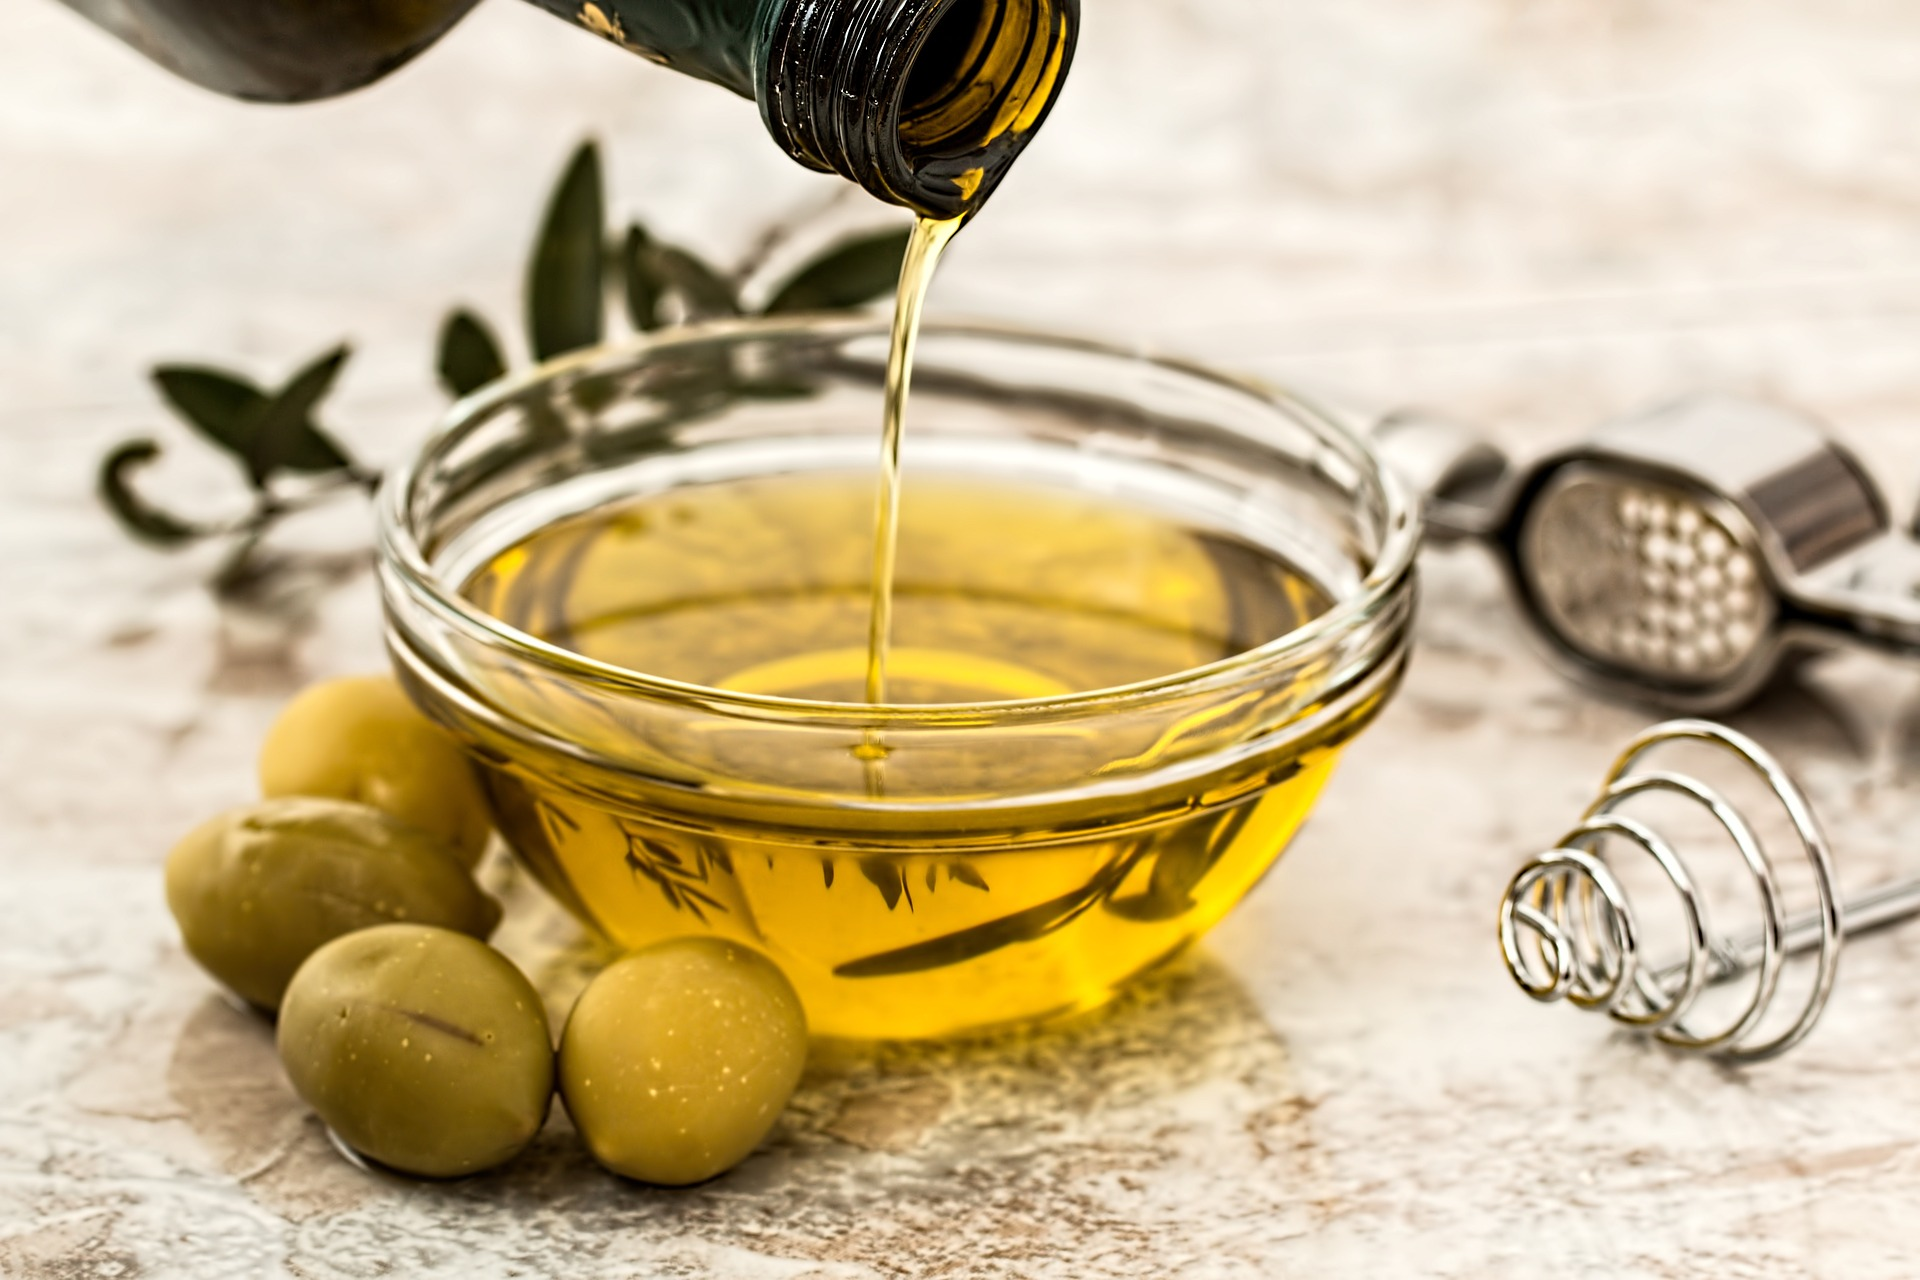 Discussion on this topic: How To Use Olive Oil To Treat , how-to-use-olive-oil-to-treat/